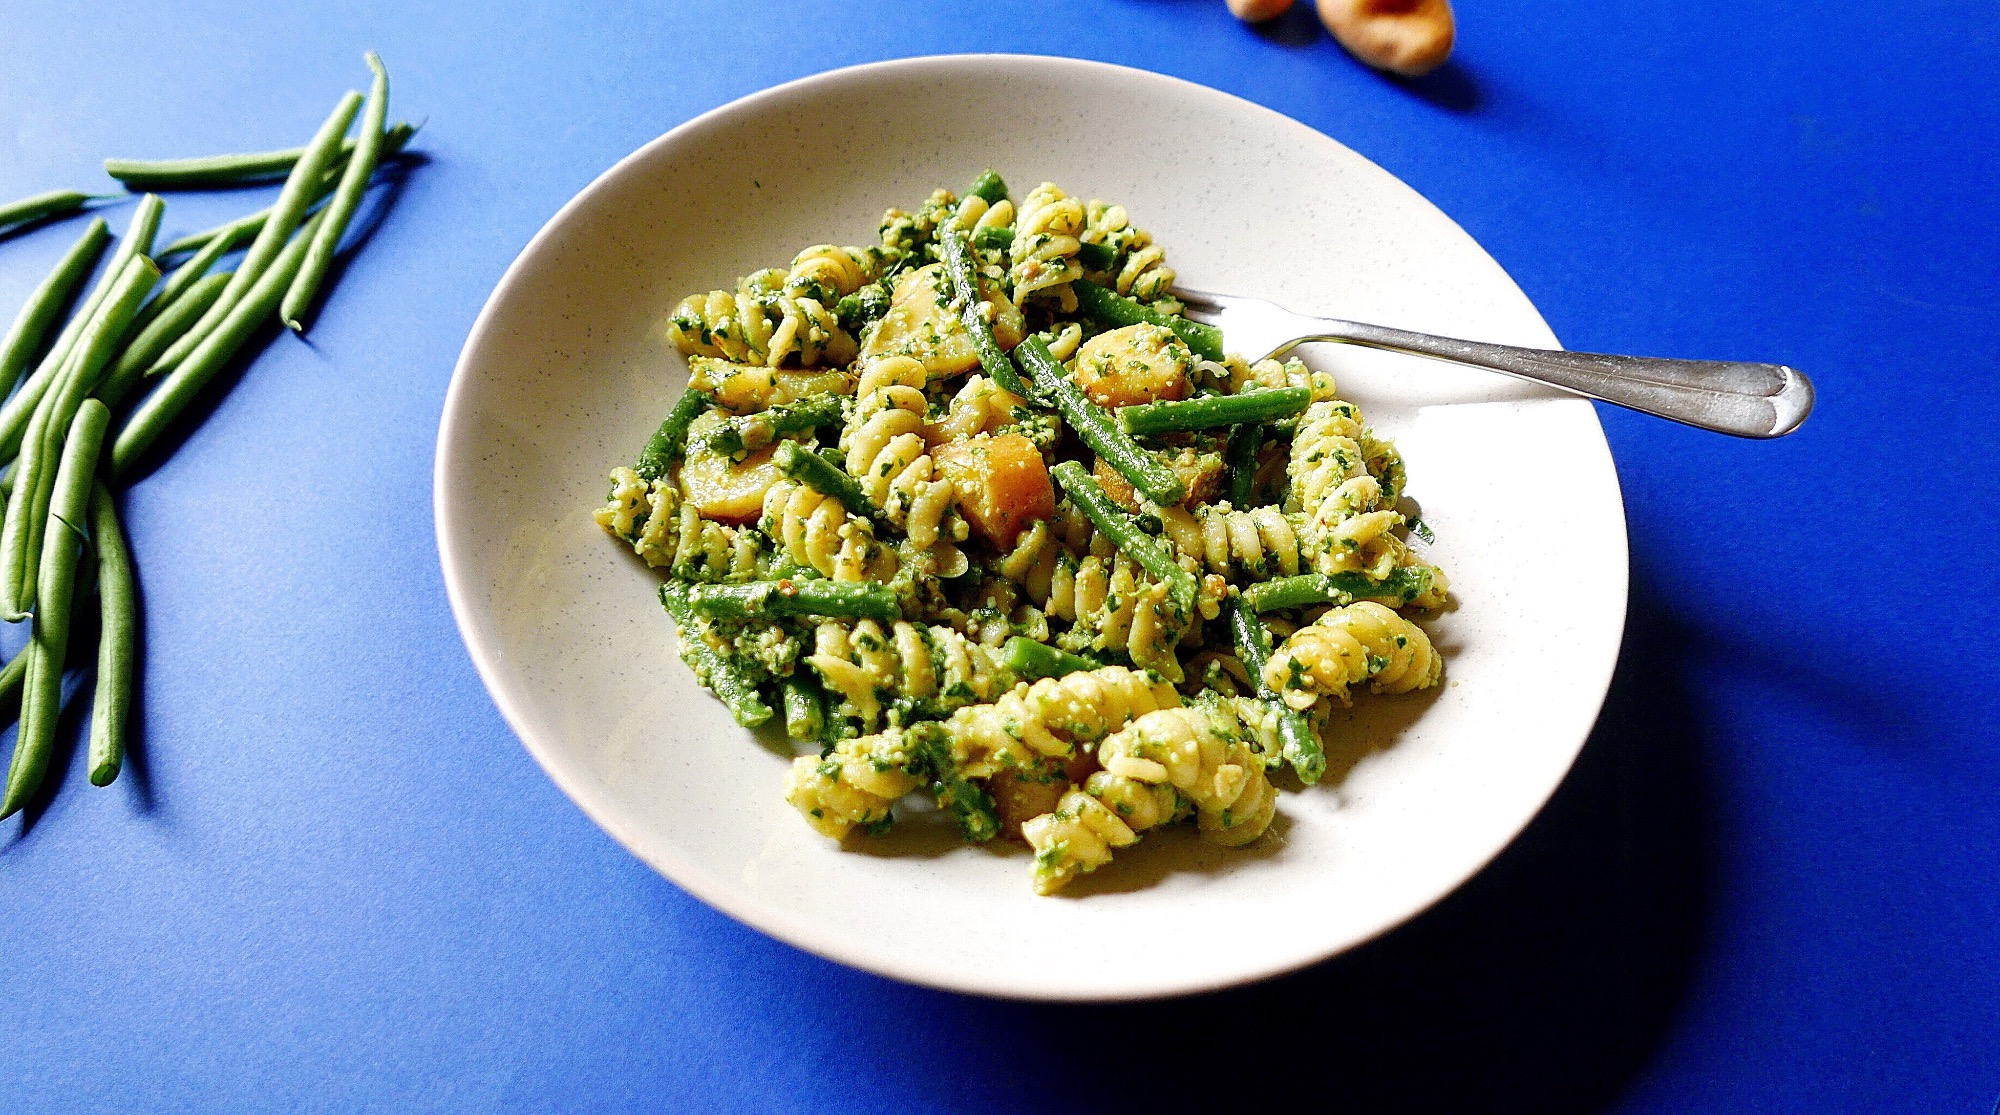 Leftover Green Beans With Pasta And Pesto Storr Cupboard